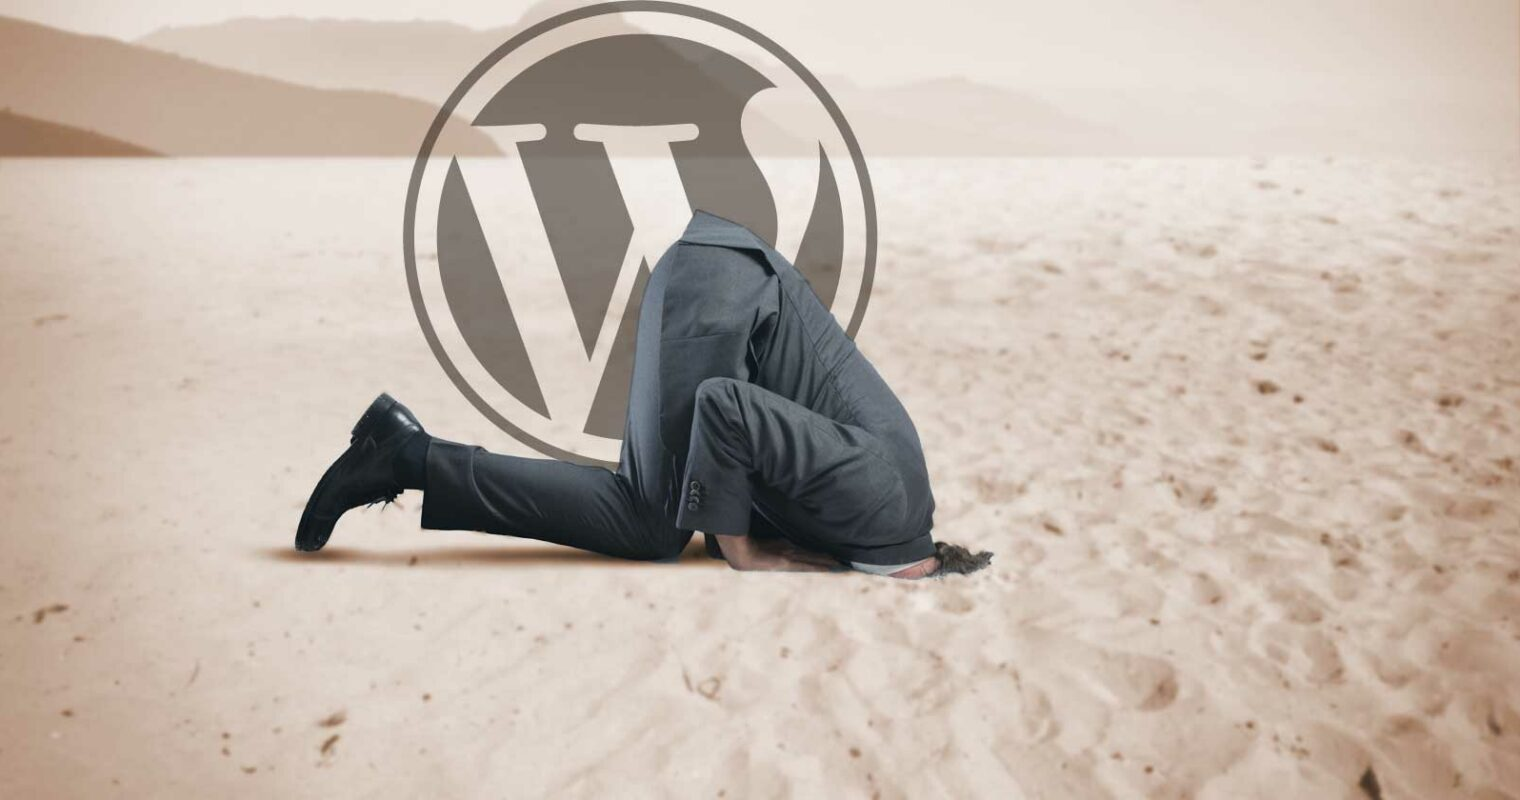 WordPress Out of Touch with Publisher Needs?